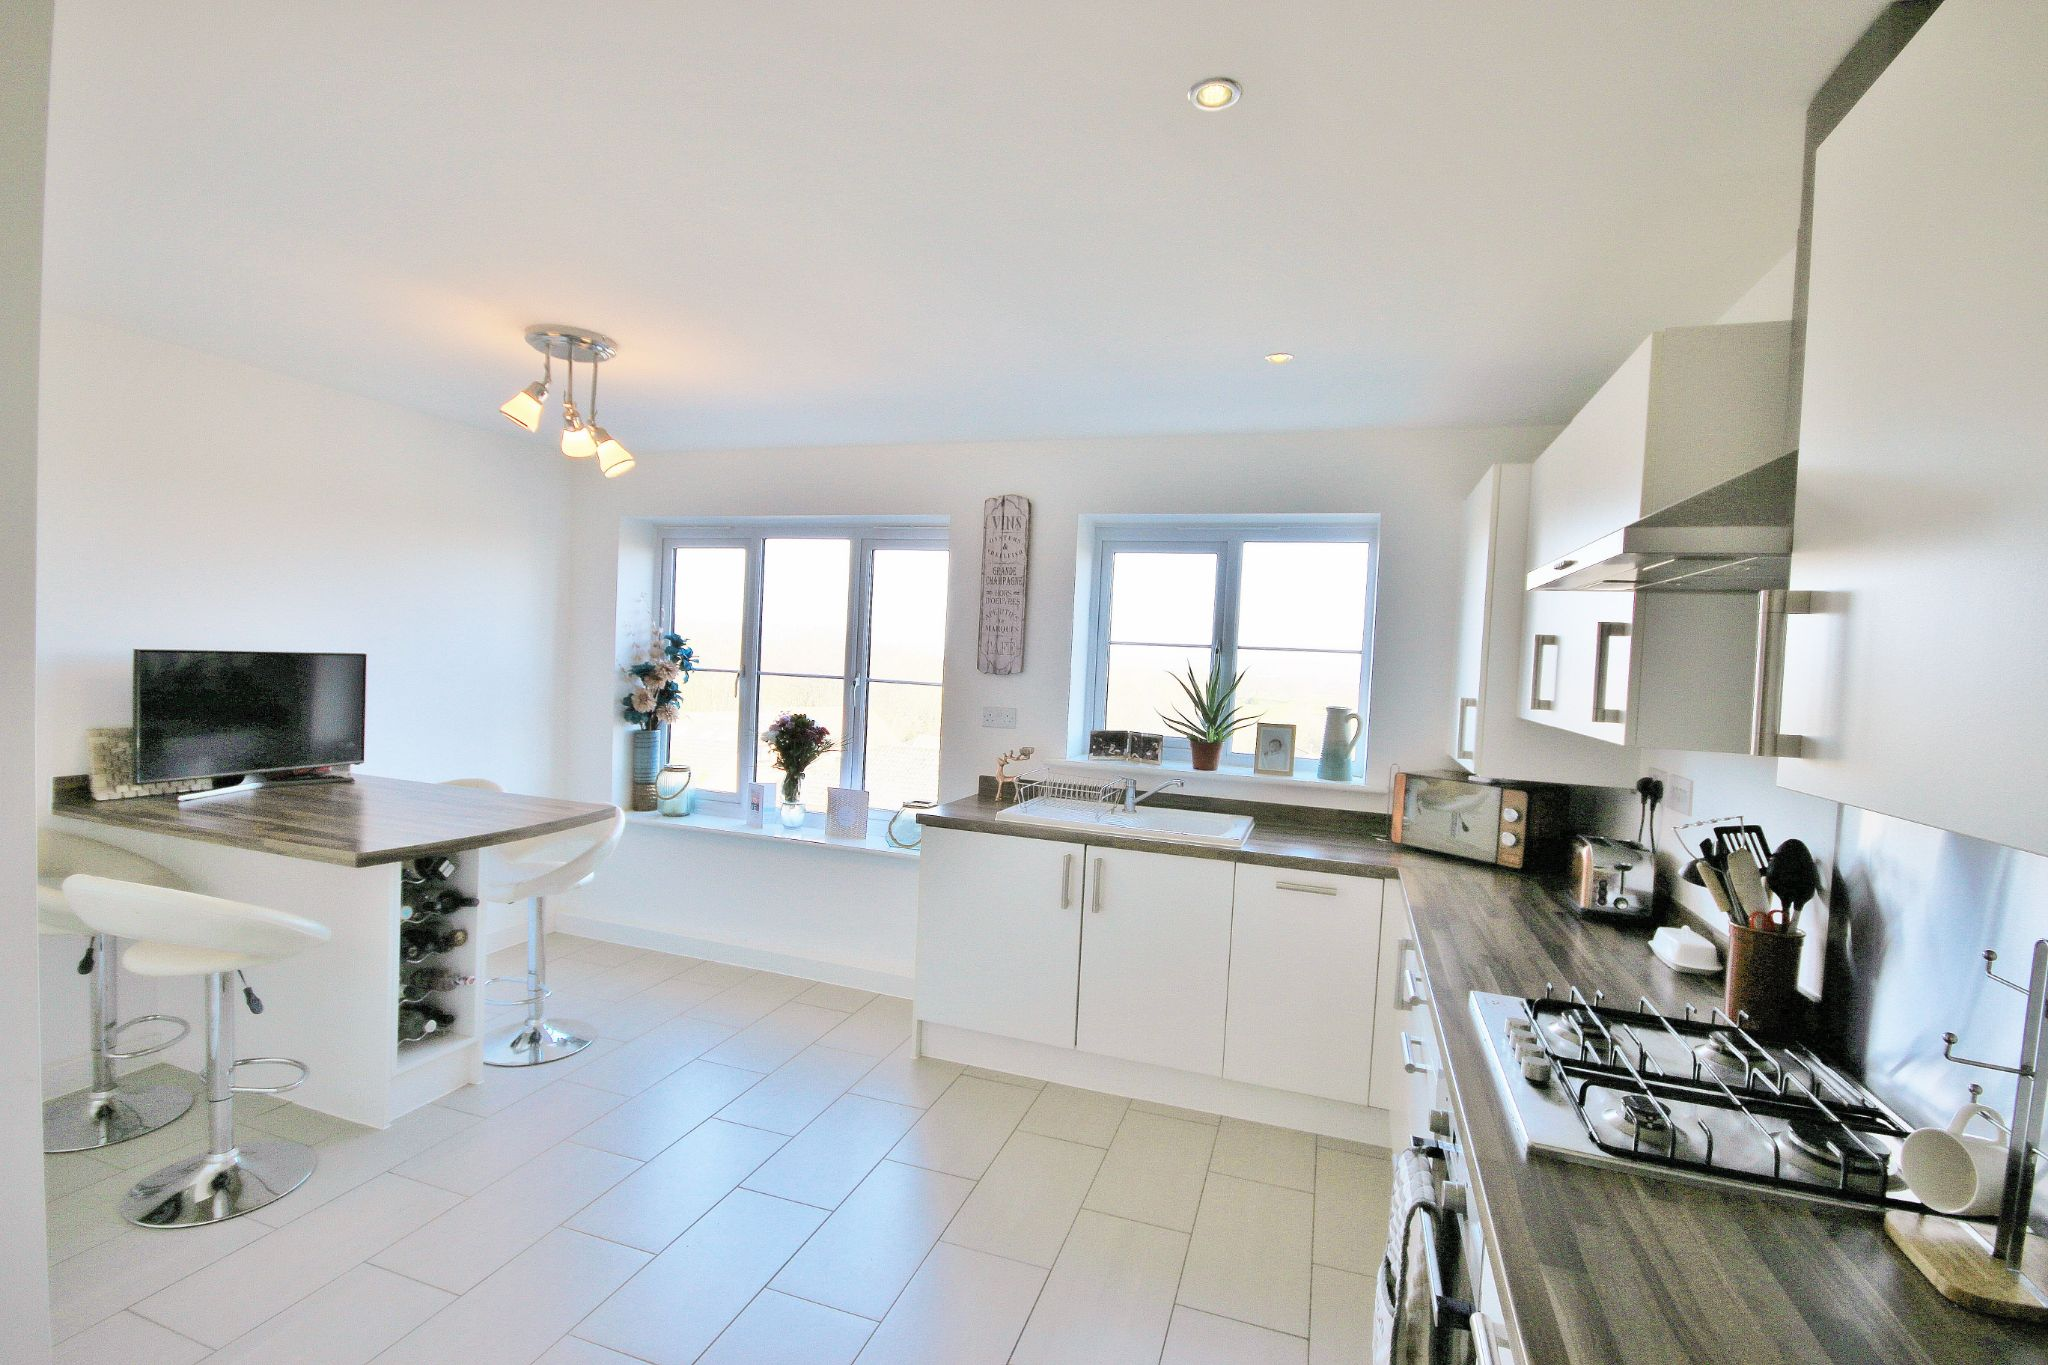 3 Bedroom Mews House For Sale - Photograph 1